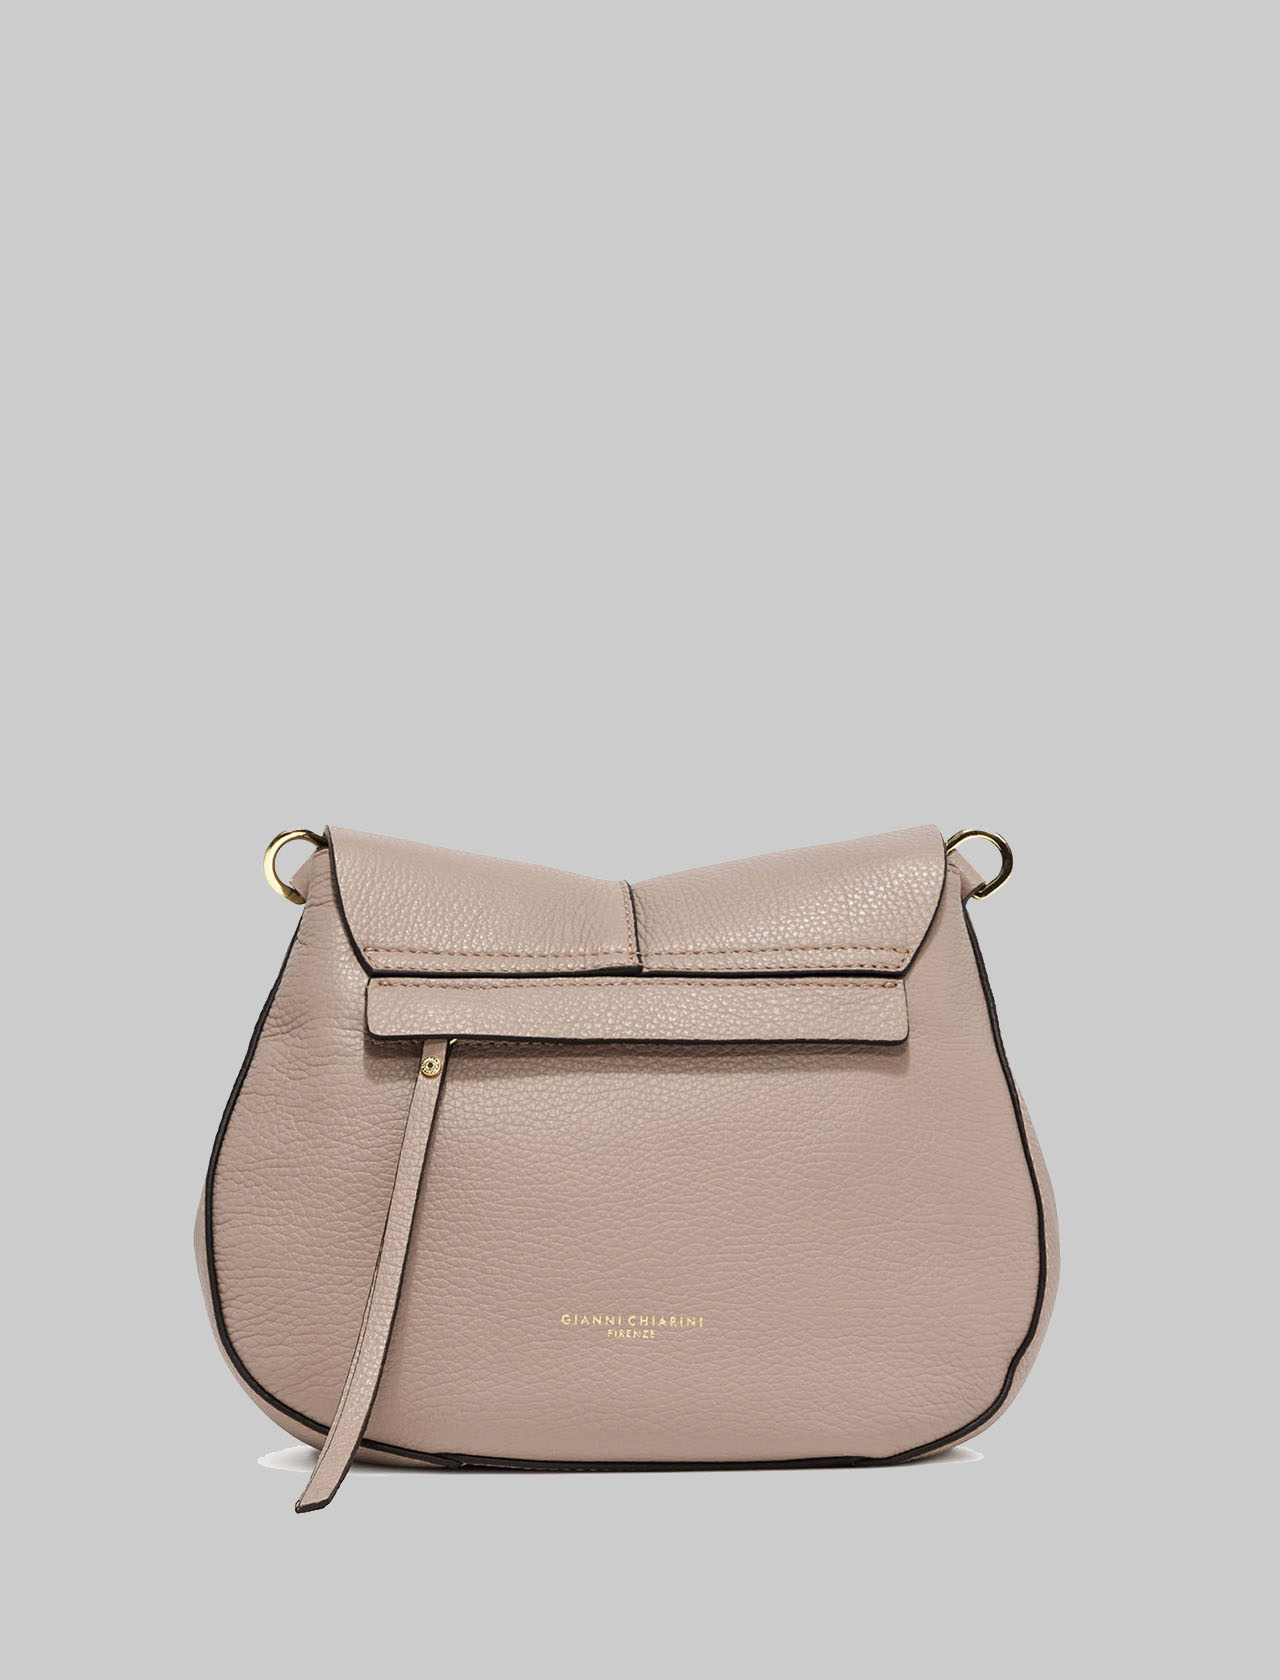 Helena Round Woman Shoulder Bag In Beige Leather With Double Removable Straps Gianni Chiarini | Bags and backpacks | BS603611706